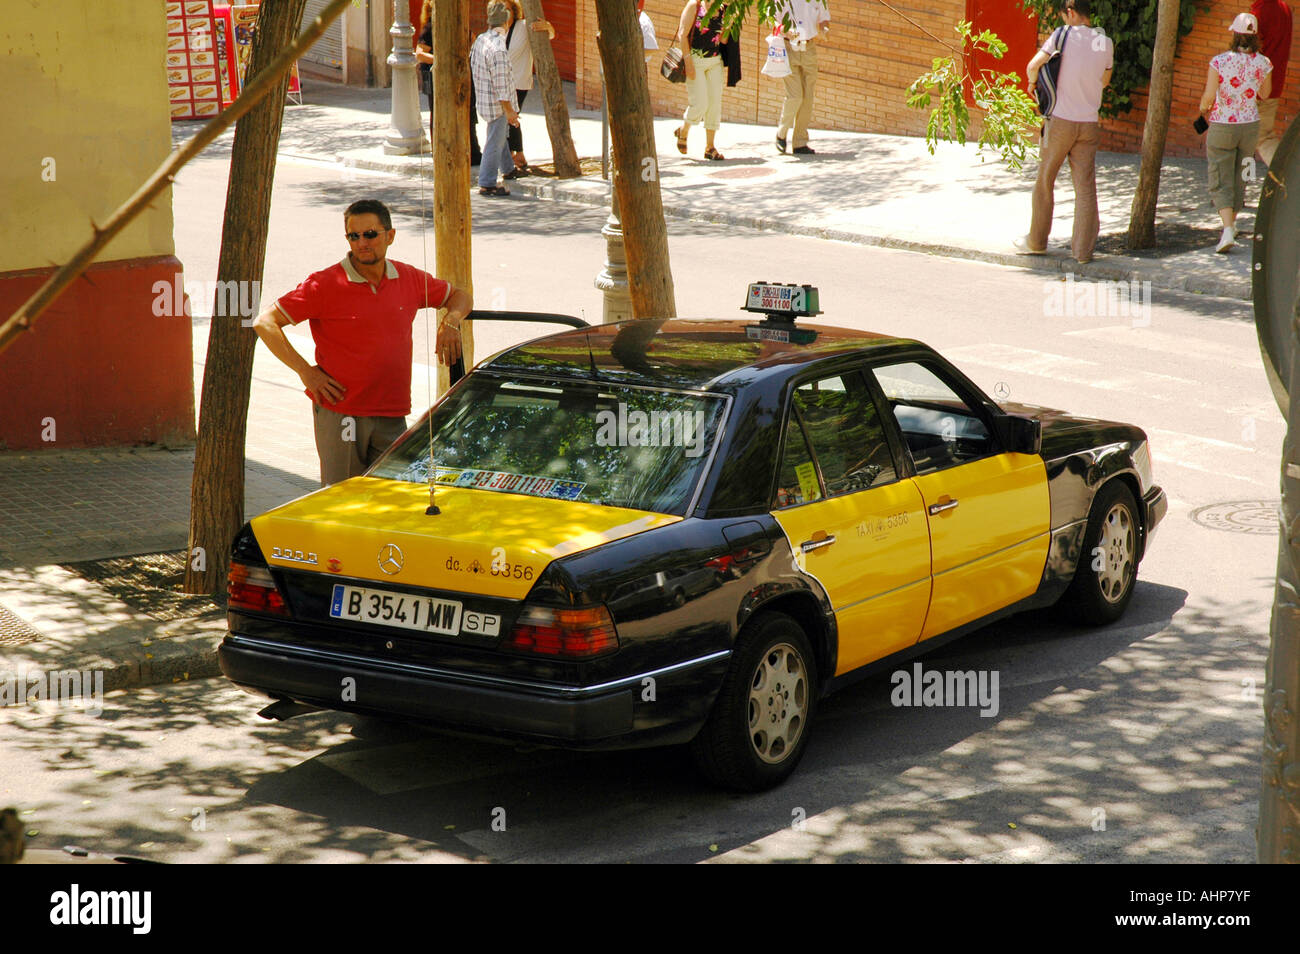 Spanish taxi driver waiting for a customer at barcelona spain stock photo royalty free image - Cab in barcelona ...